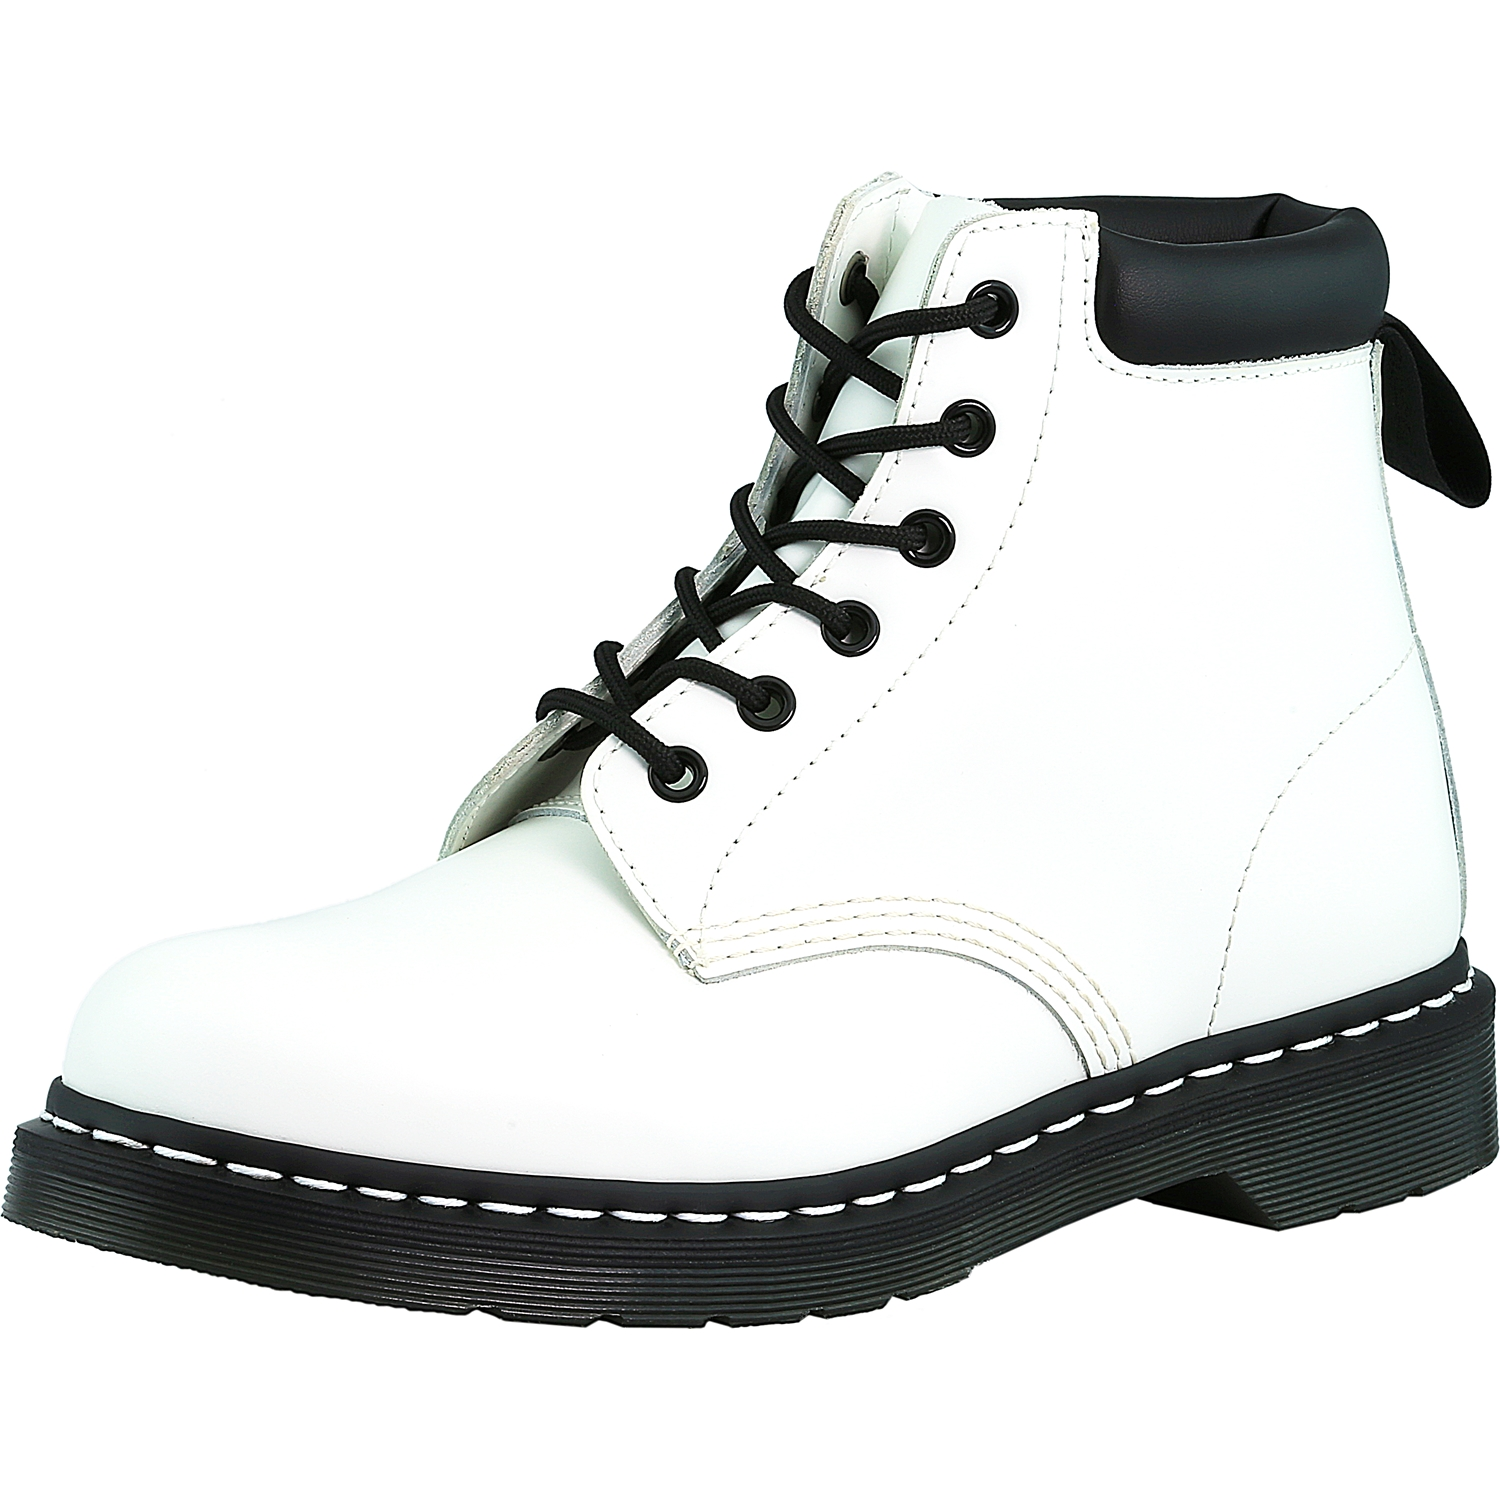 Dr. Martens 939 Smooth Leather 6 Eye